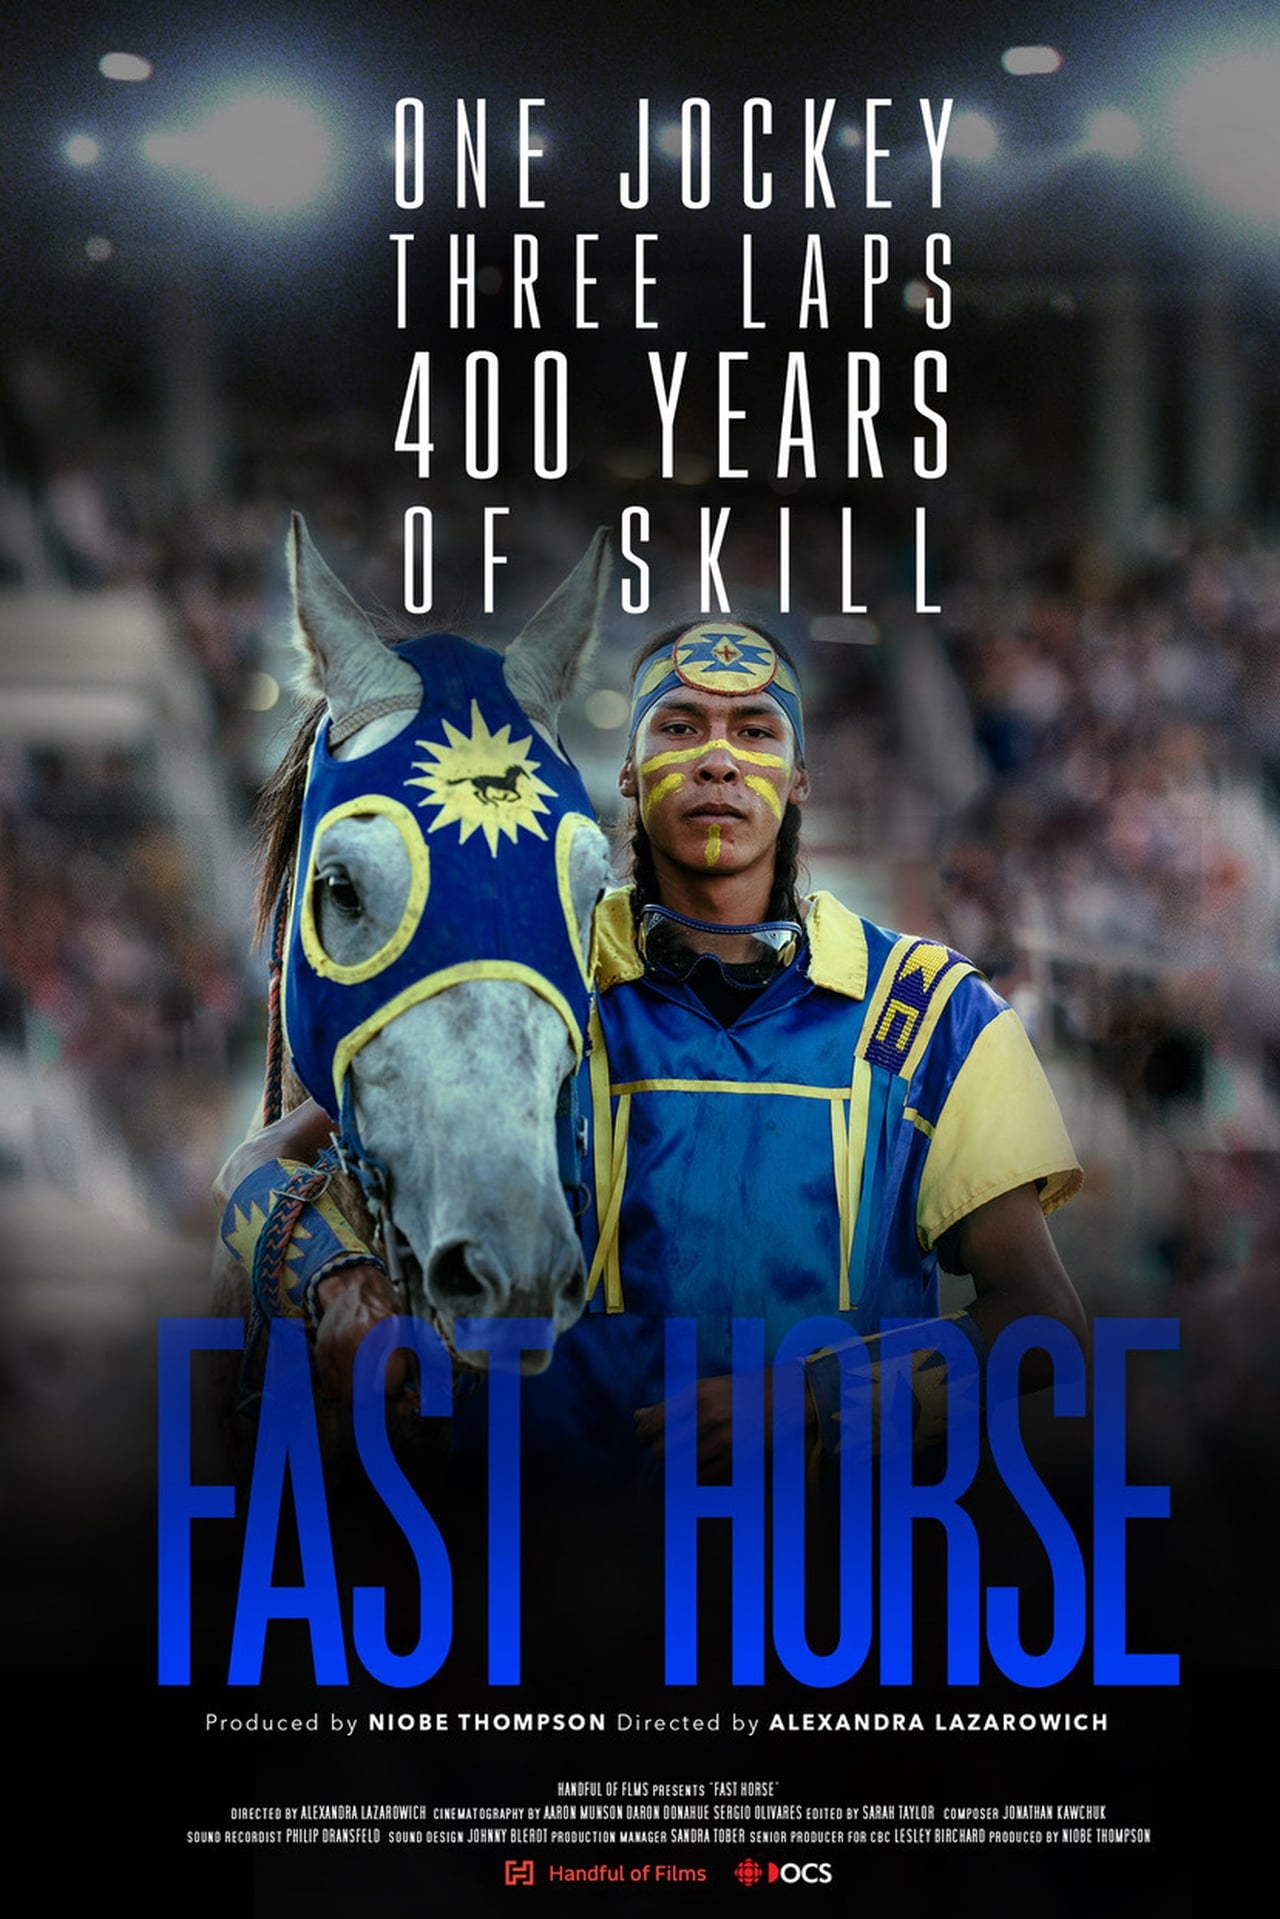 Fast Horse (2018)